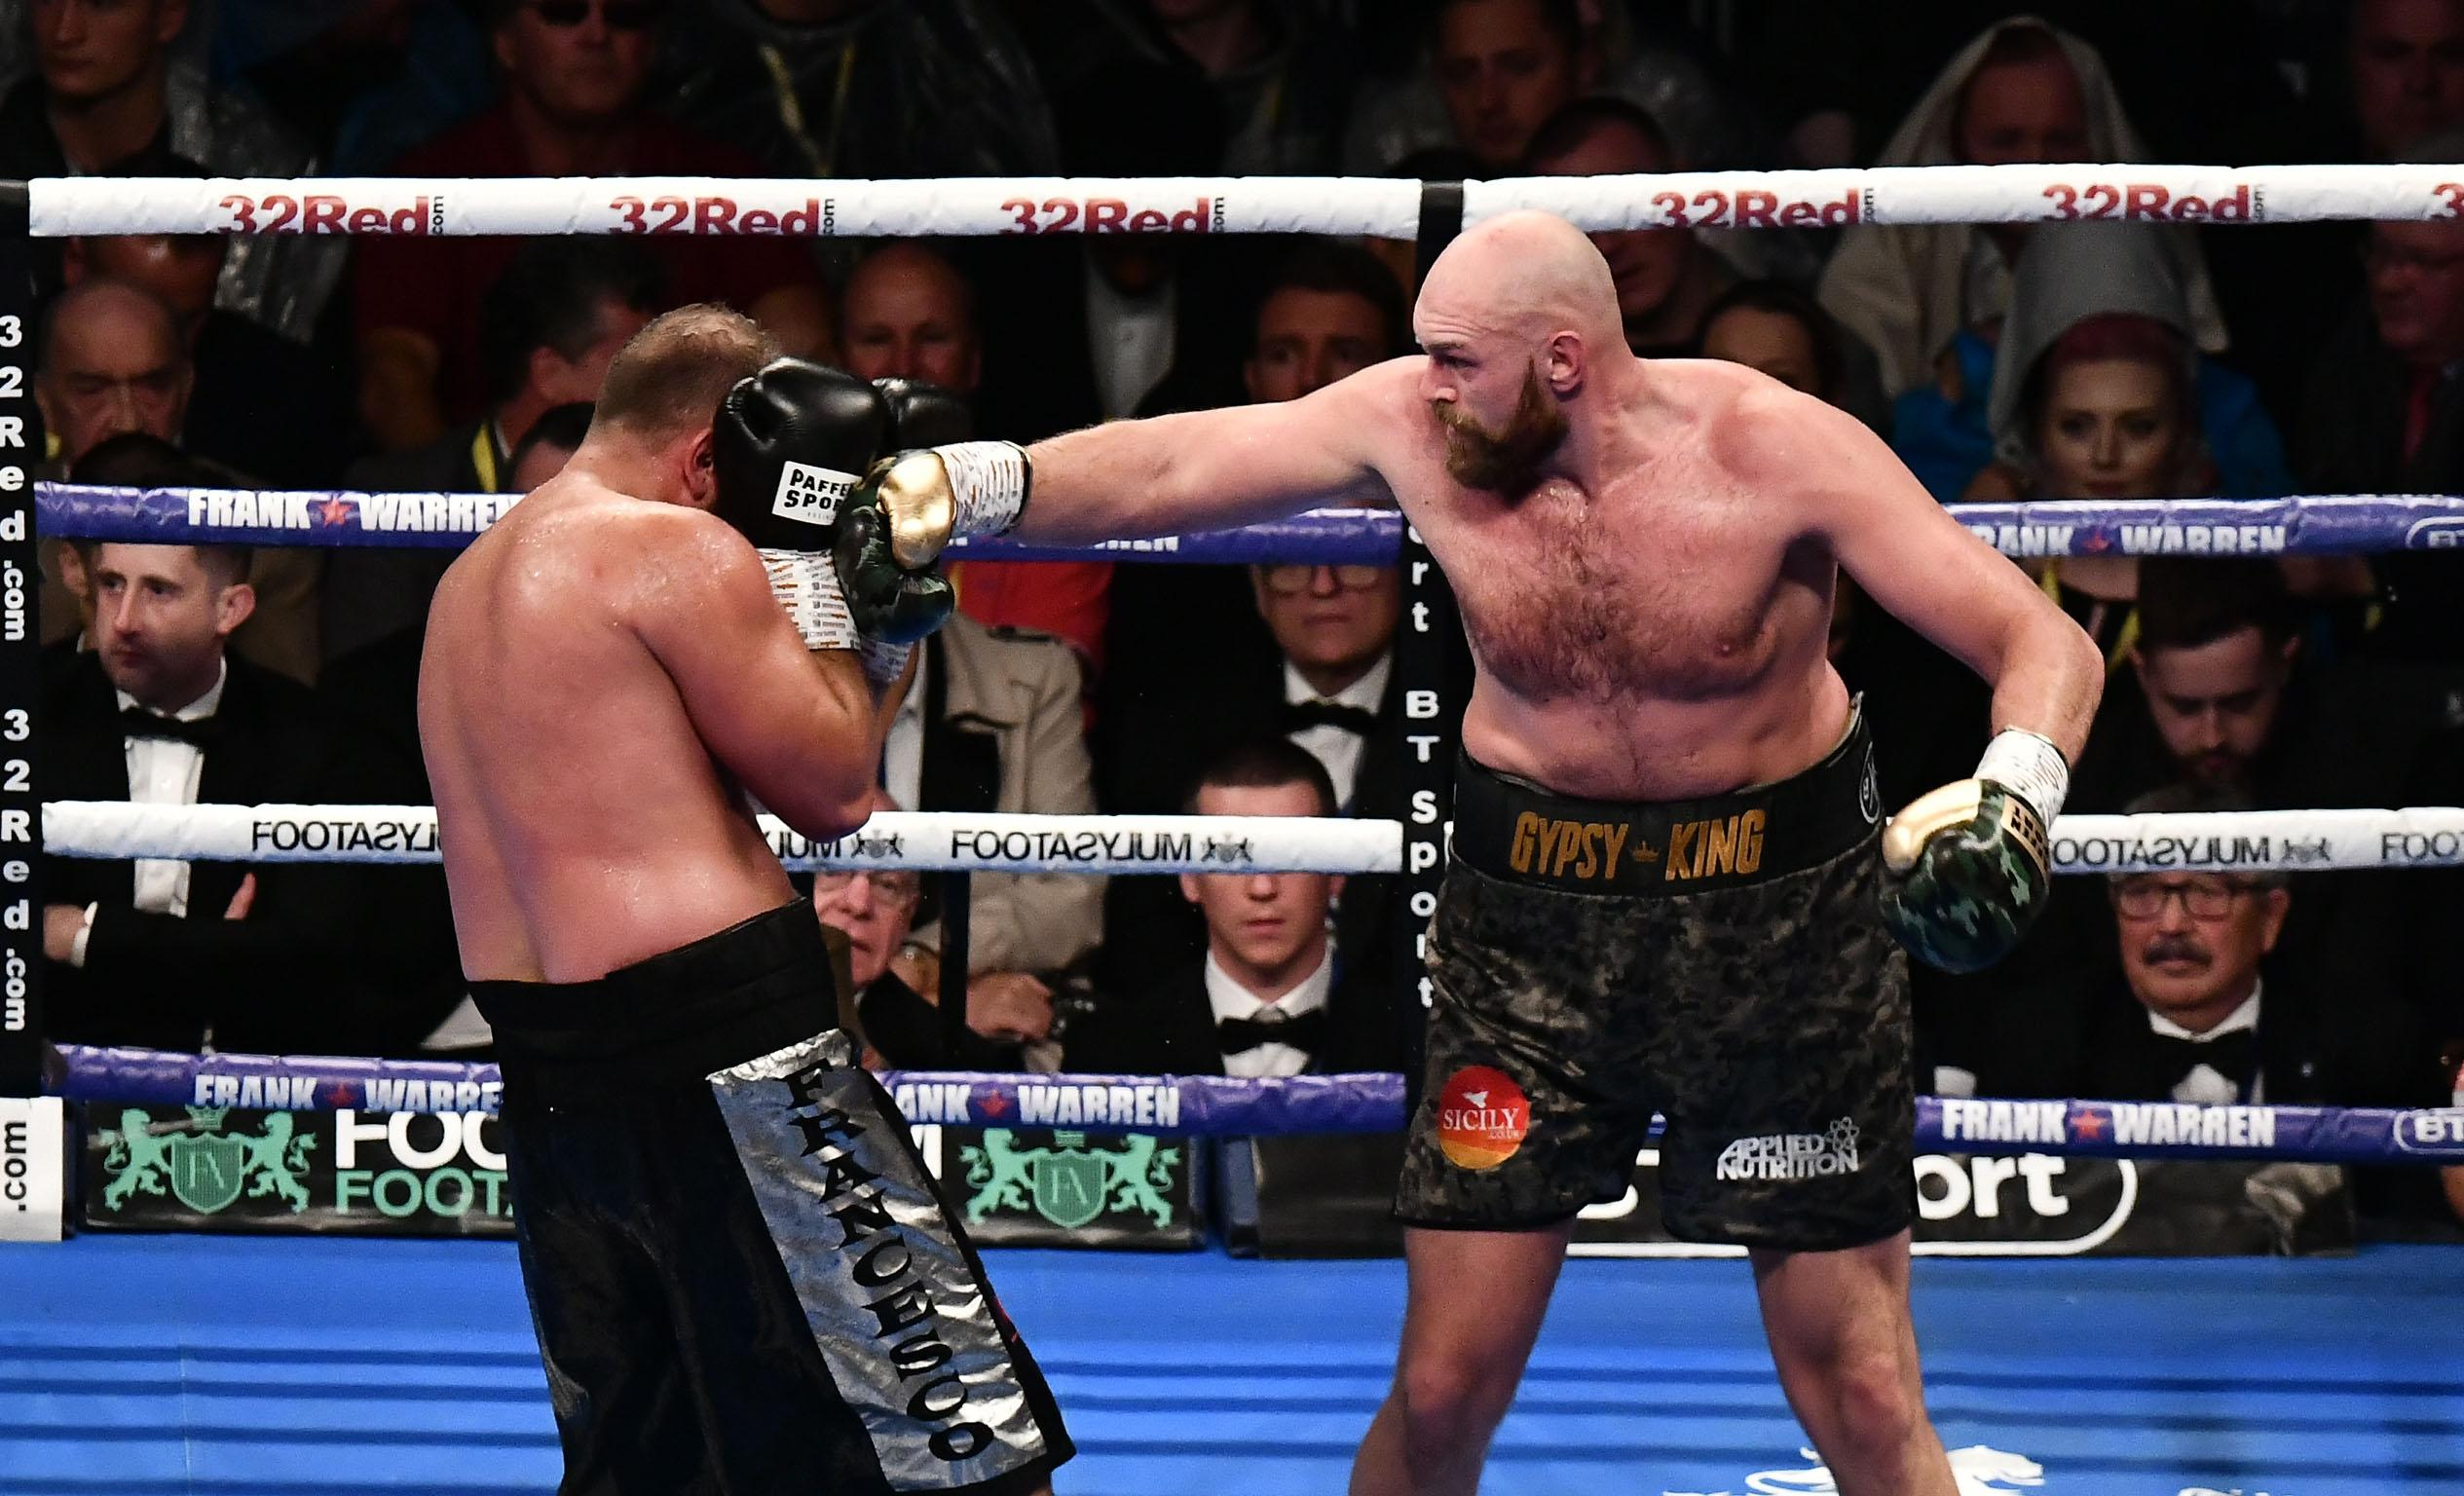 Fury has made his comeback in the ring after having three years out of the sport thanks to drug and mental health problems, and wants his titles back after beating Klitschko in Dusseldorf in 2015